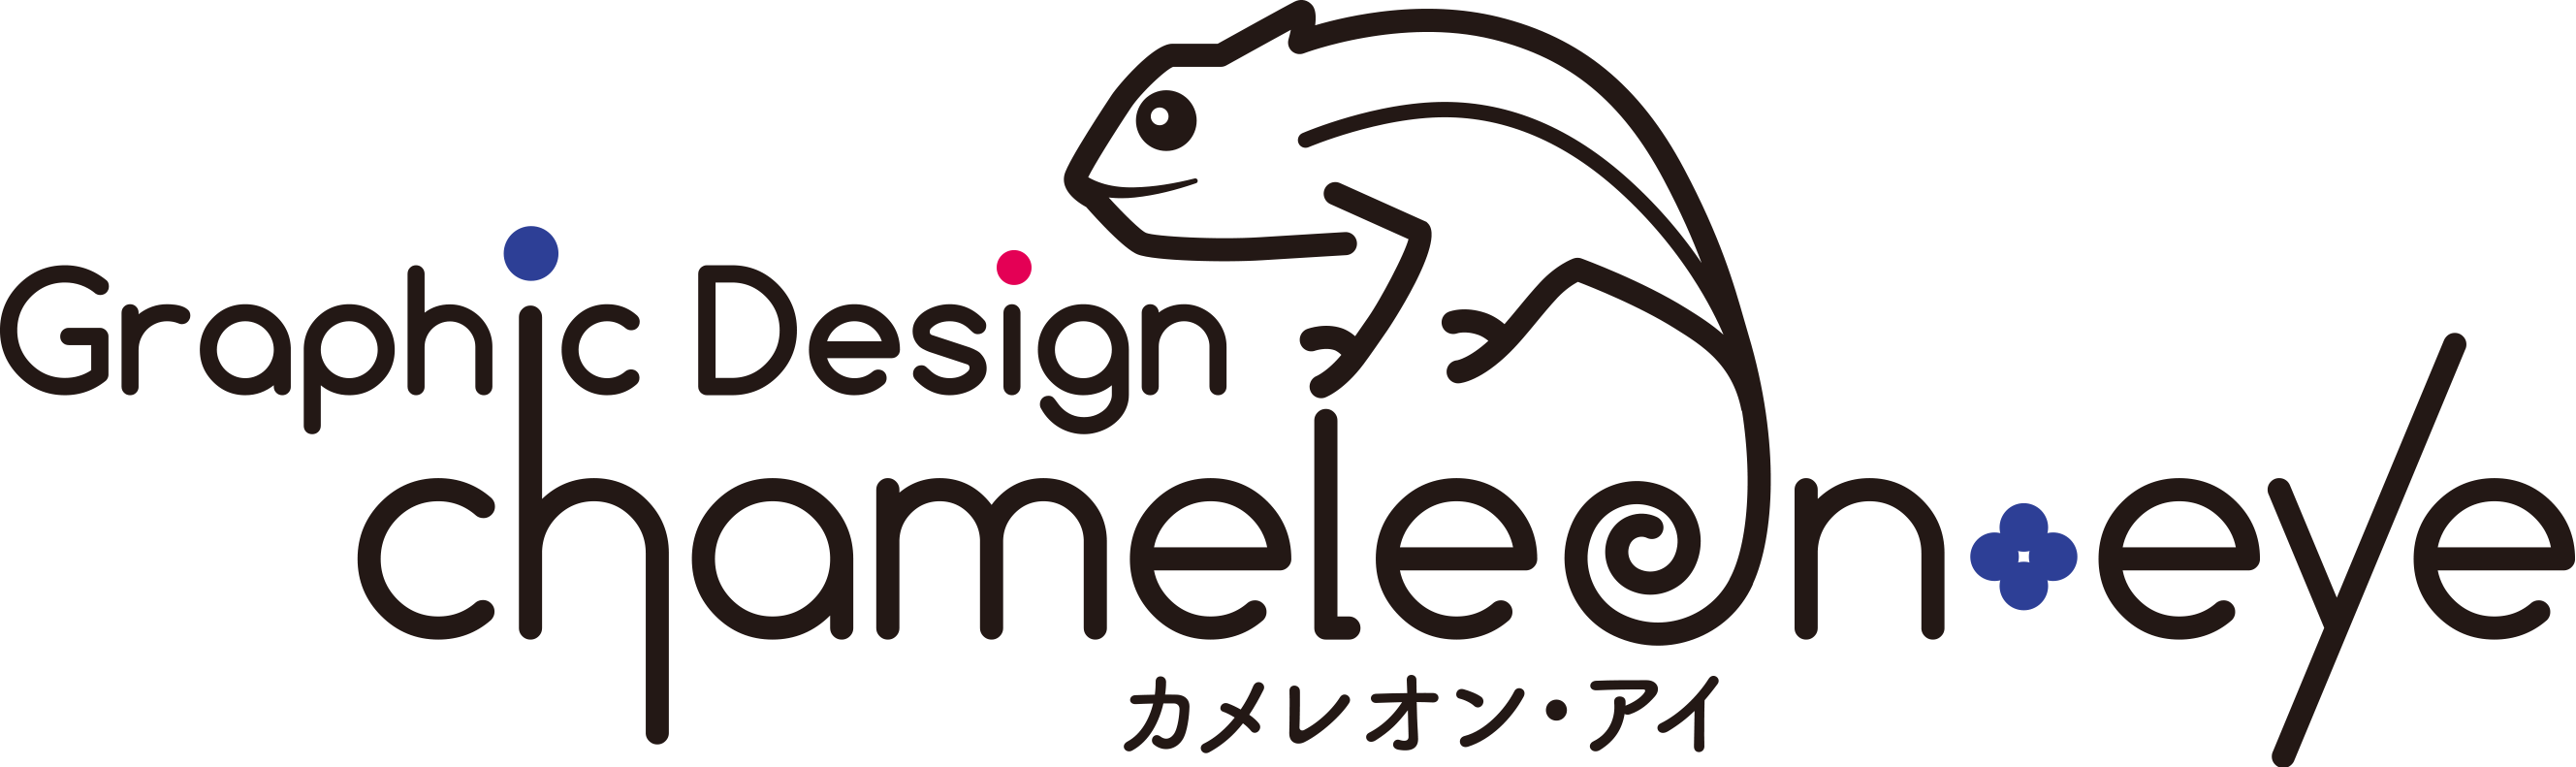 Graphic Design chameleon-eye